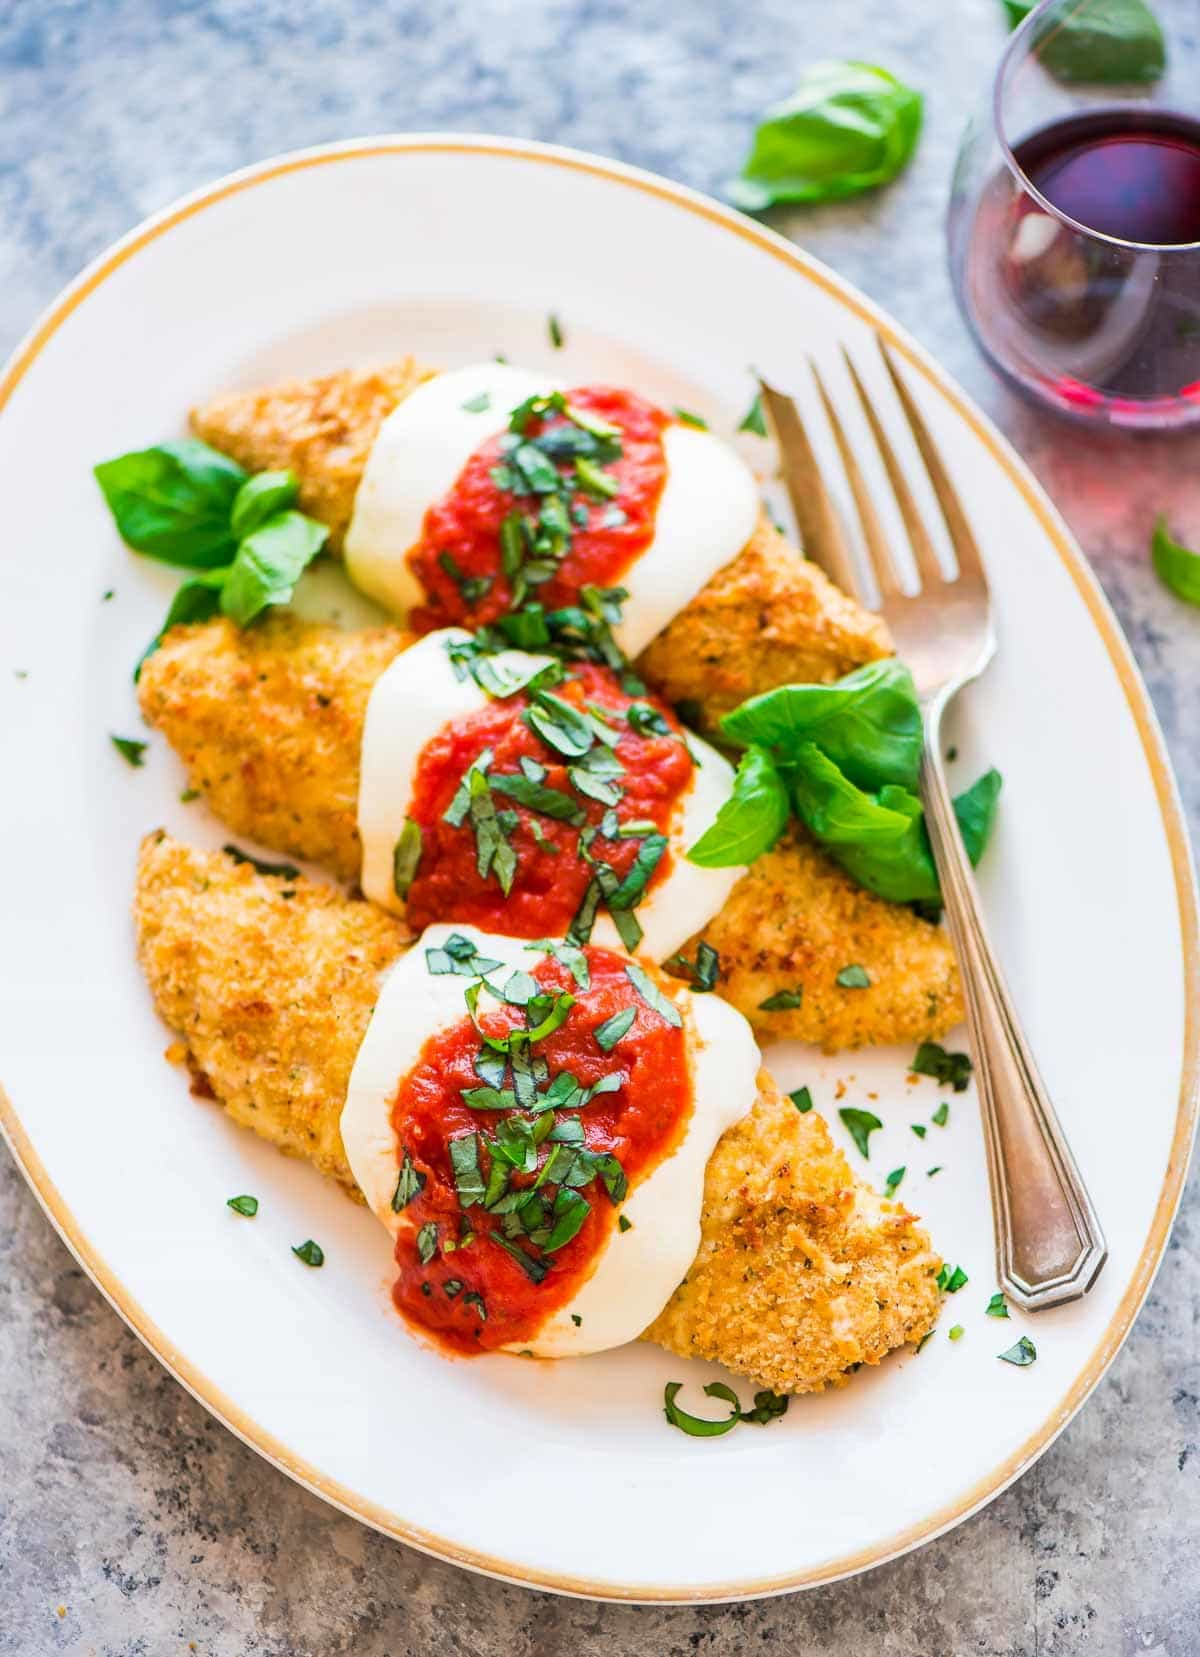 Healthy Baked Chicken Recipes  Baked Chicken Parmesan